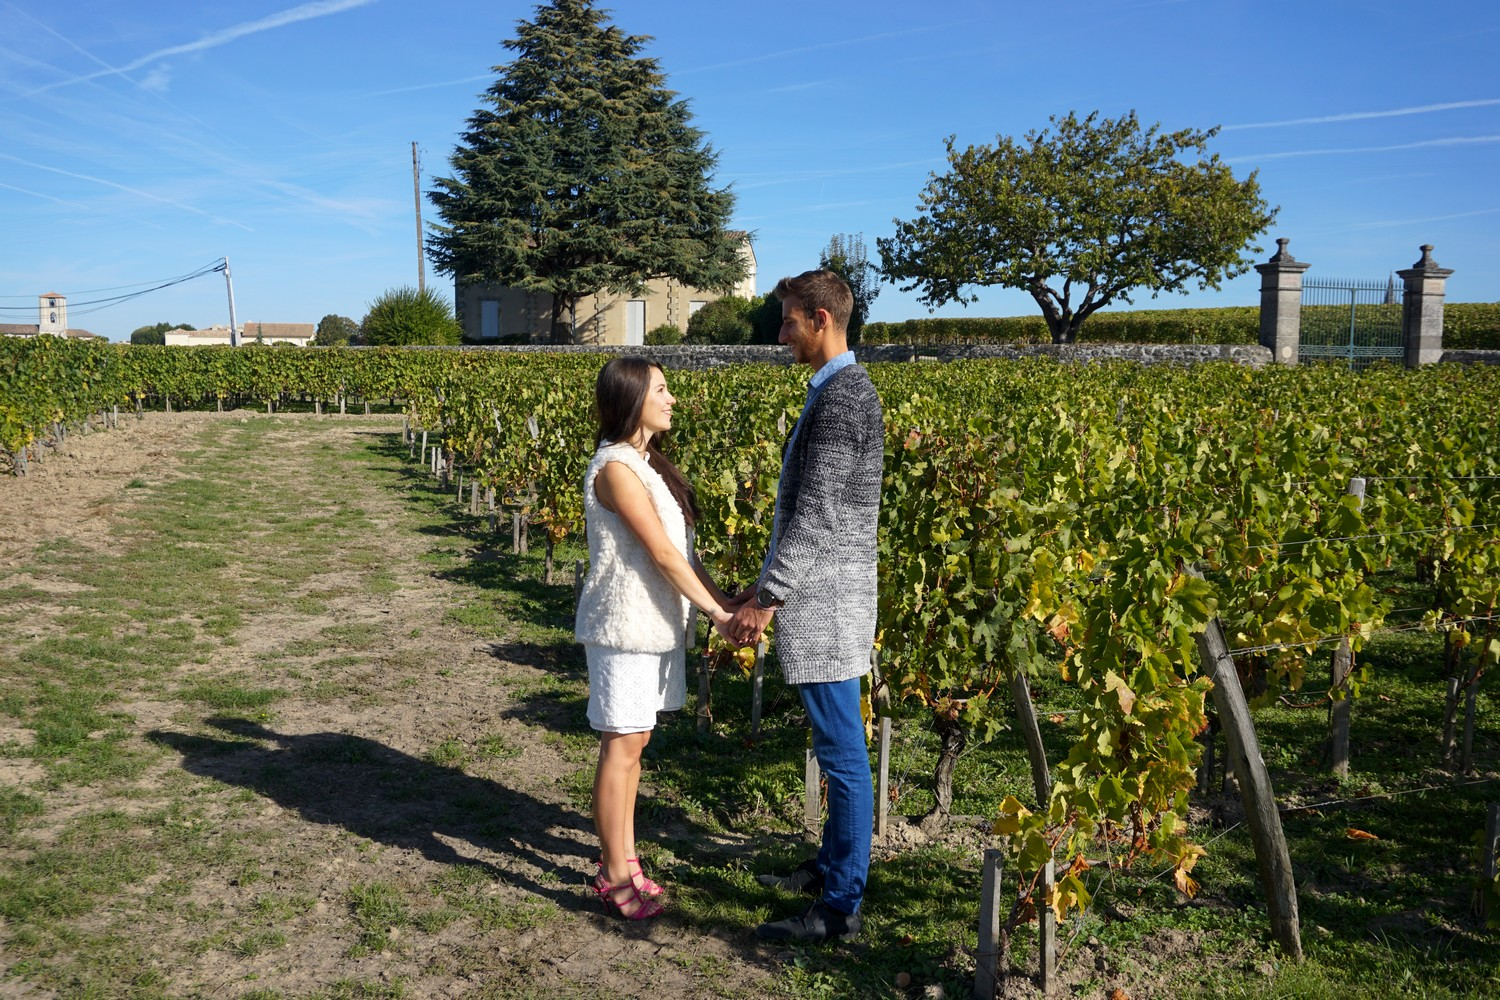 1-an-du-blog-en-couple-bordeaux-corse-blog-voyage-lifestyle-mode-look-shooting-photo-couple-vigne-05